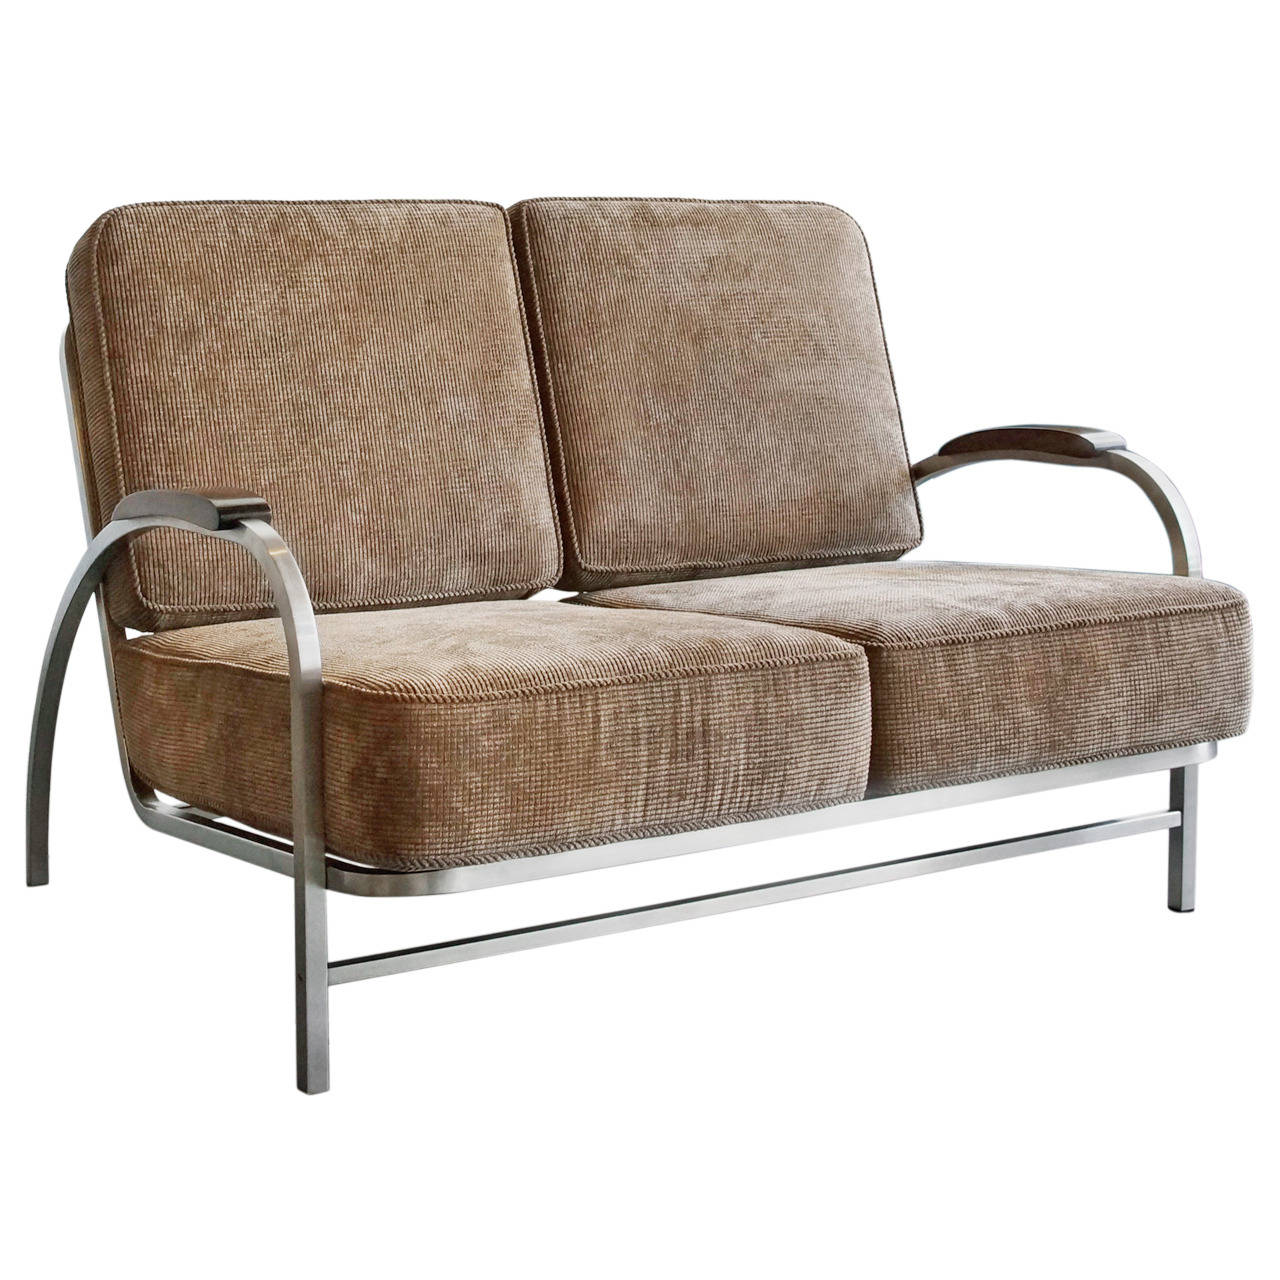 Retro style sofa fulham 2 seater sofa natural fabric retro for American sofa berlin